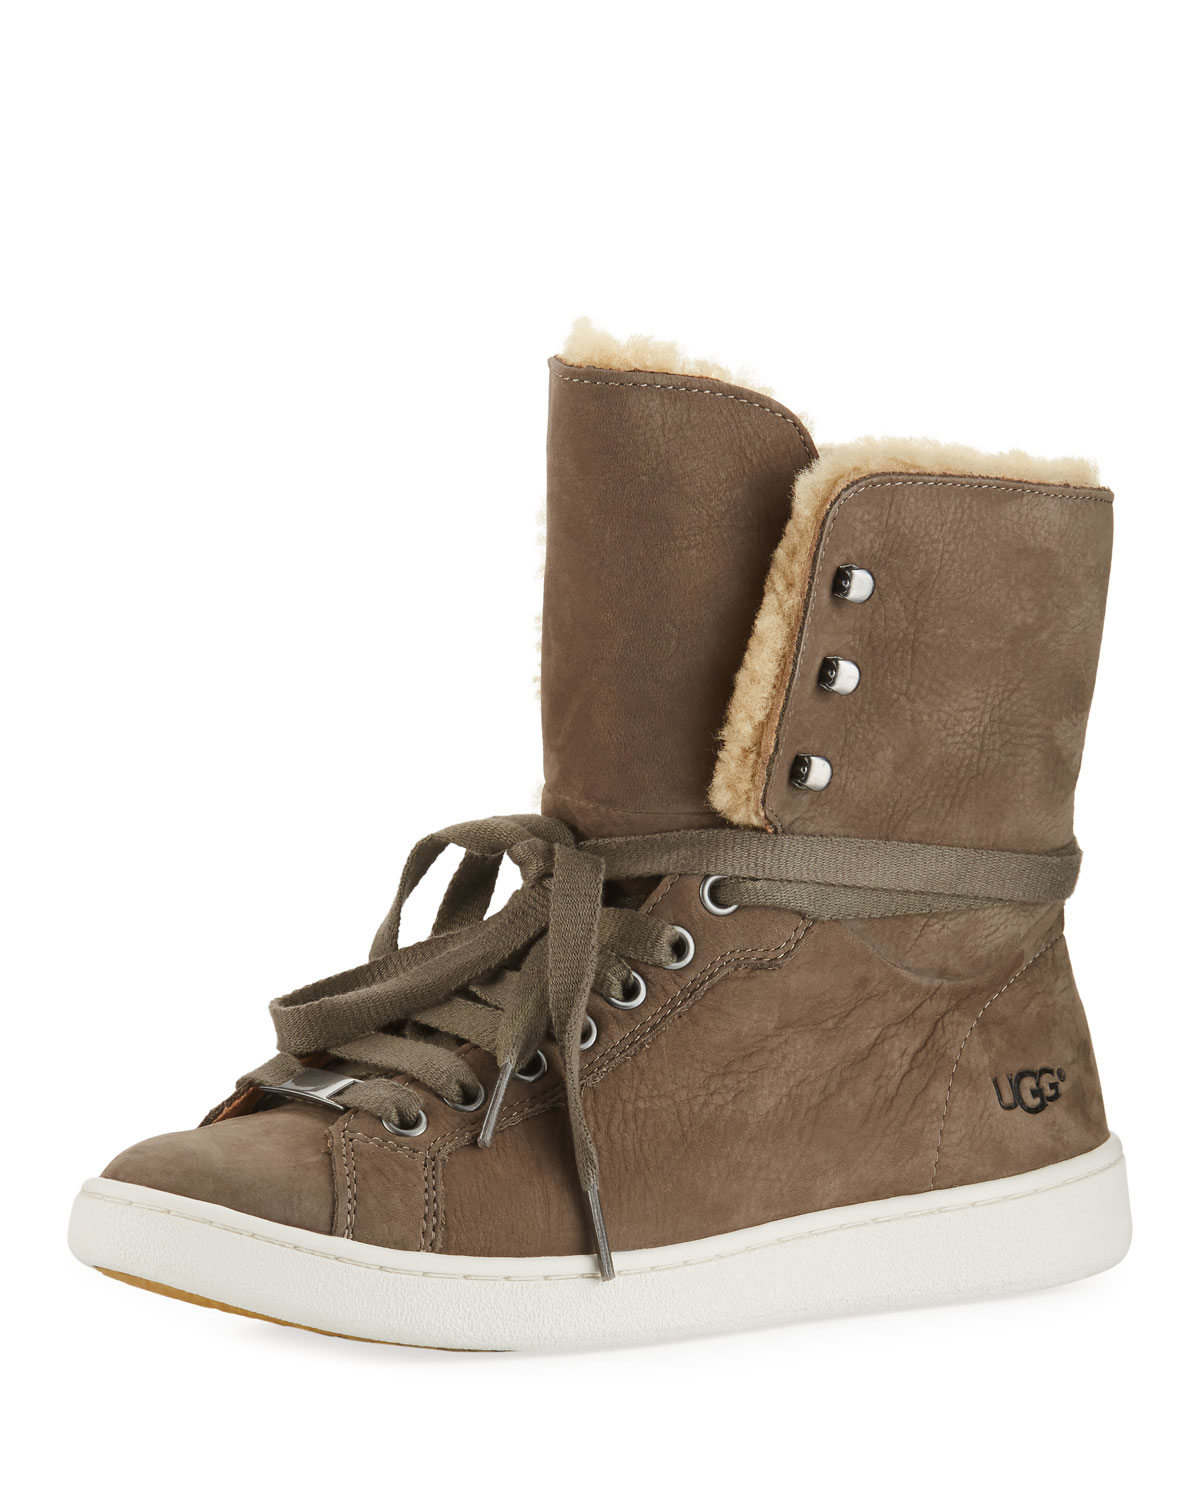 UGG Starlyn Leather and Shearling High Top Sneakers